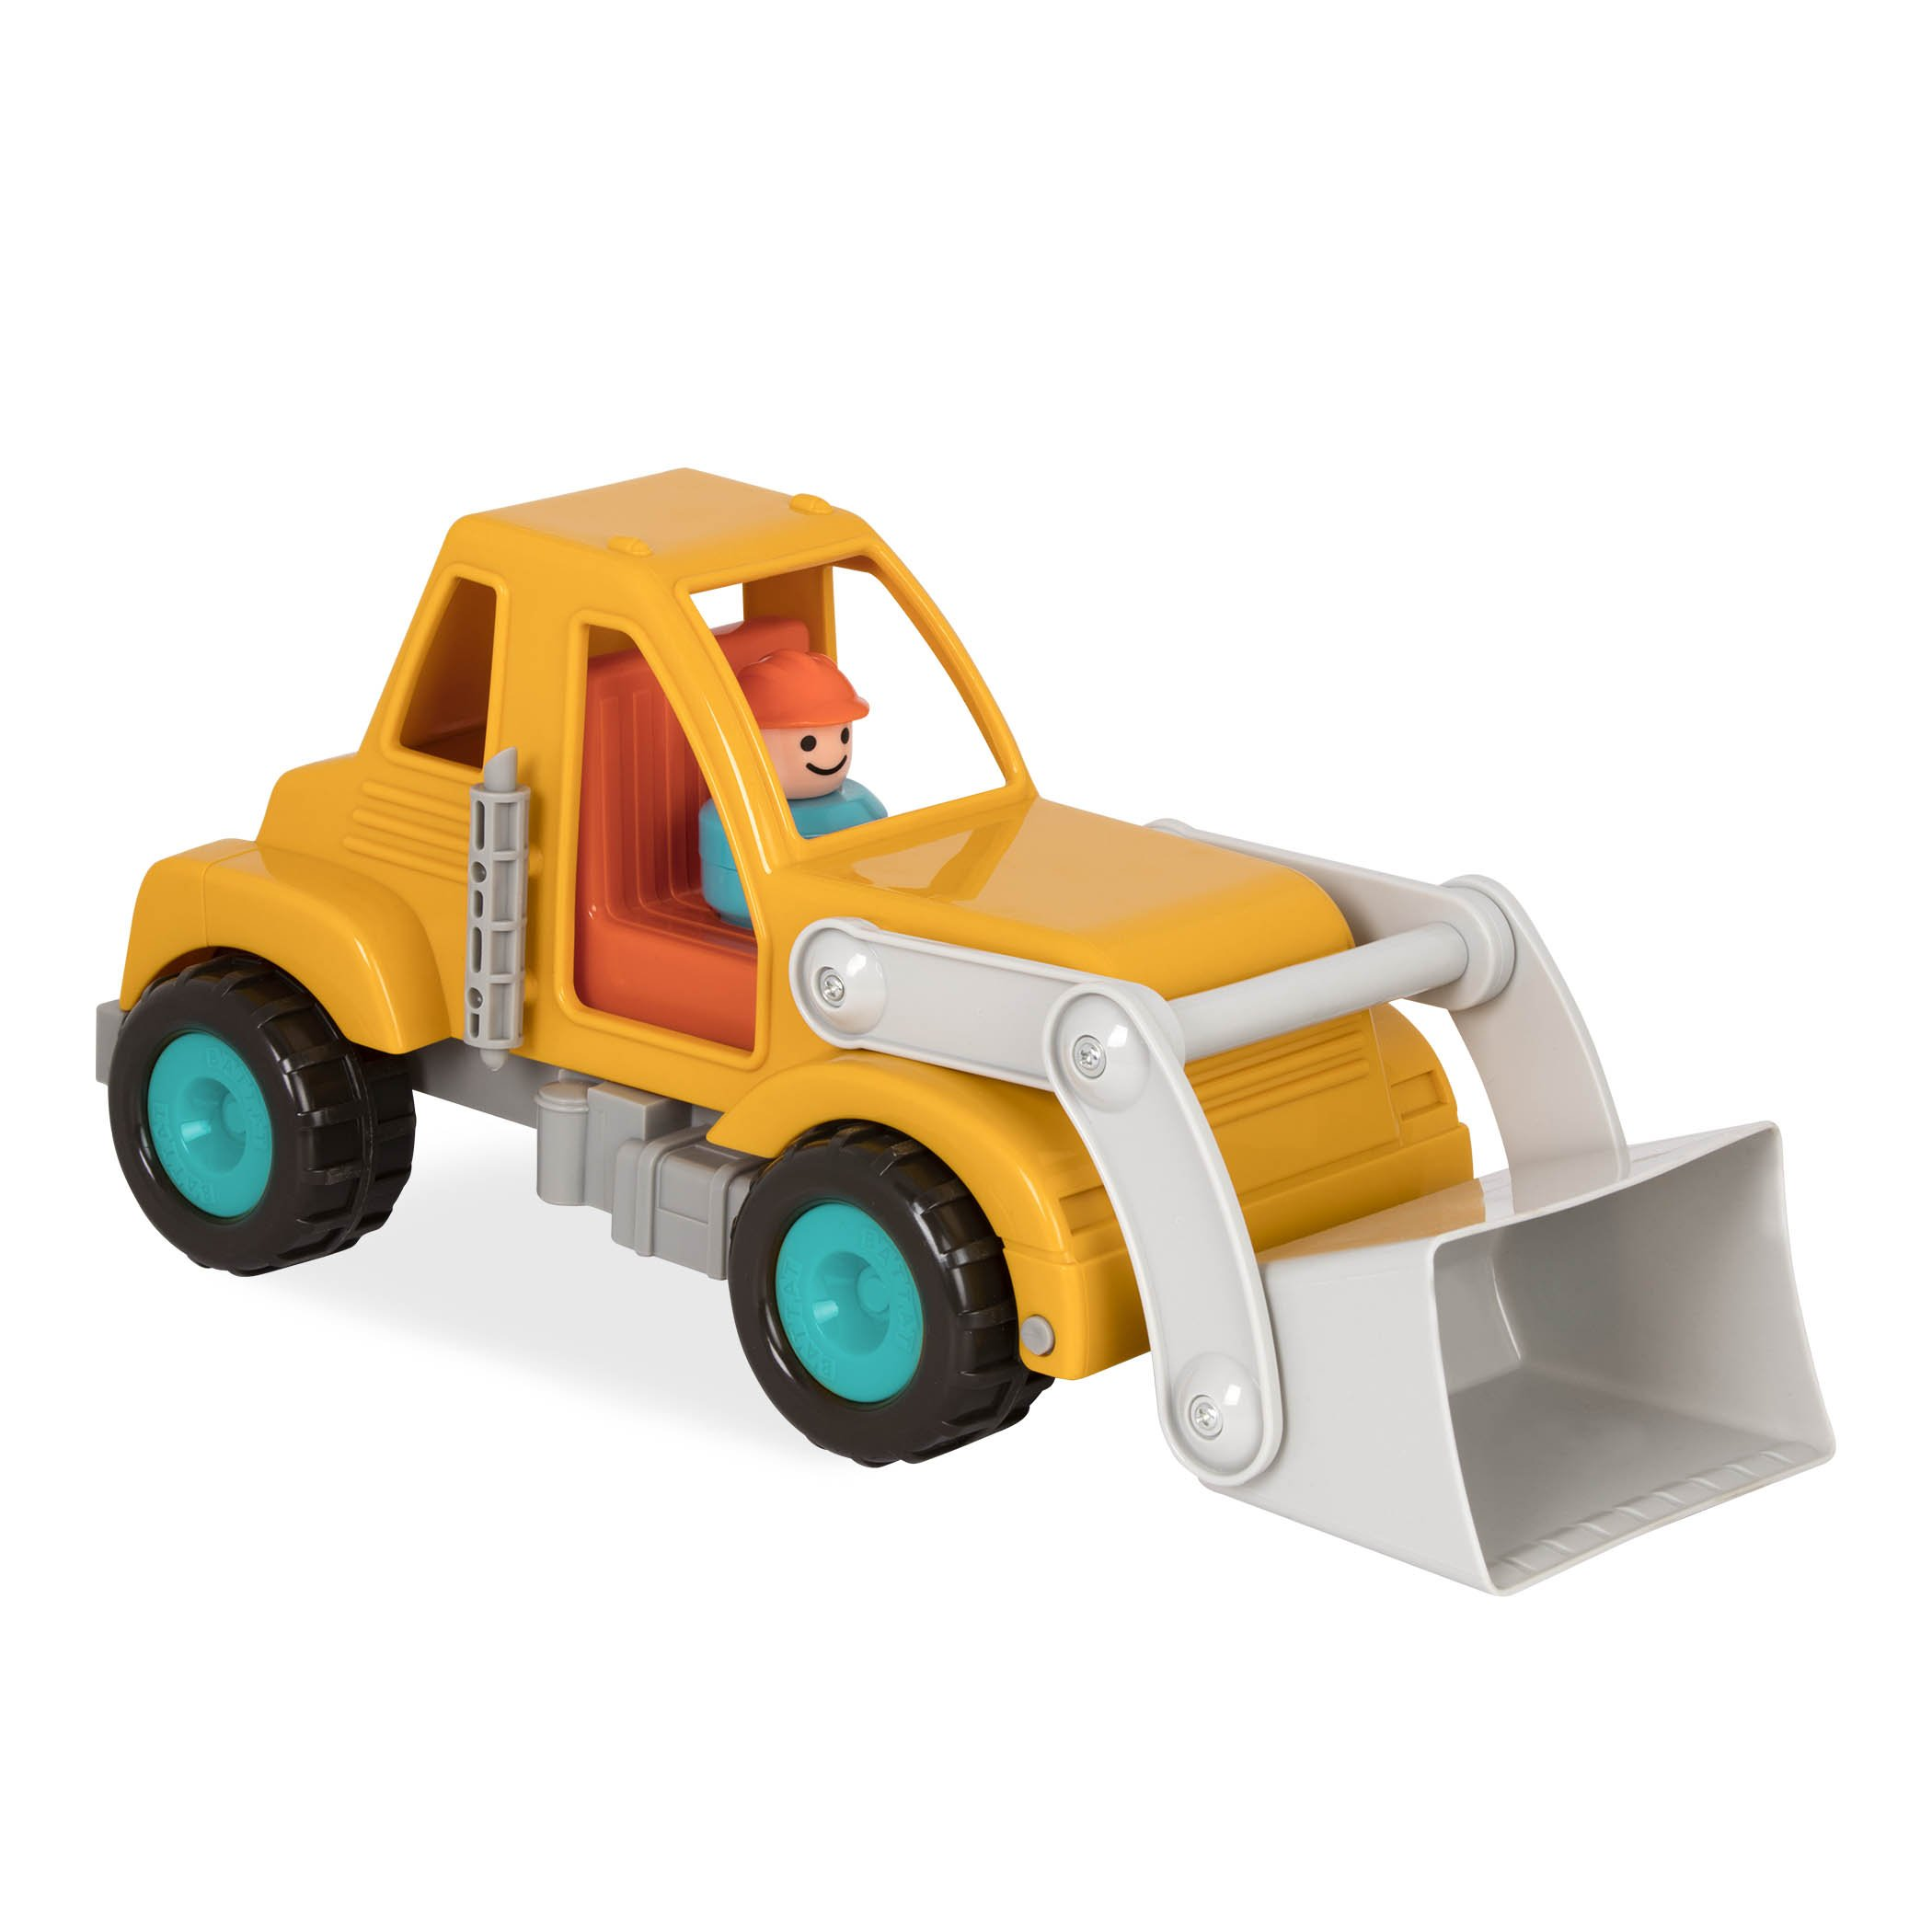 Battat Front End Loader Truck with Working Movable Parts and 1 Driver - Toy Trucks for Toddlers 18m+